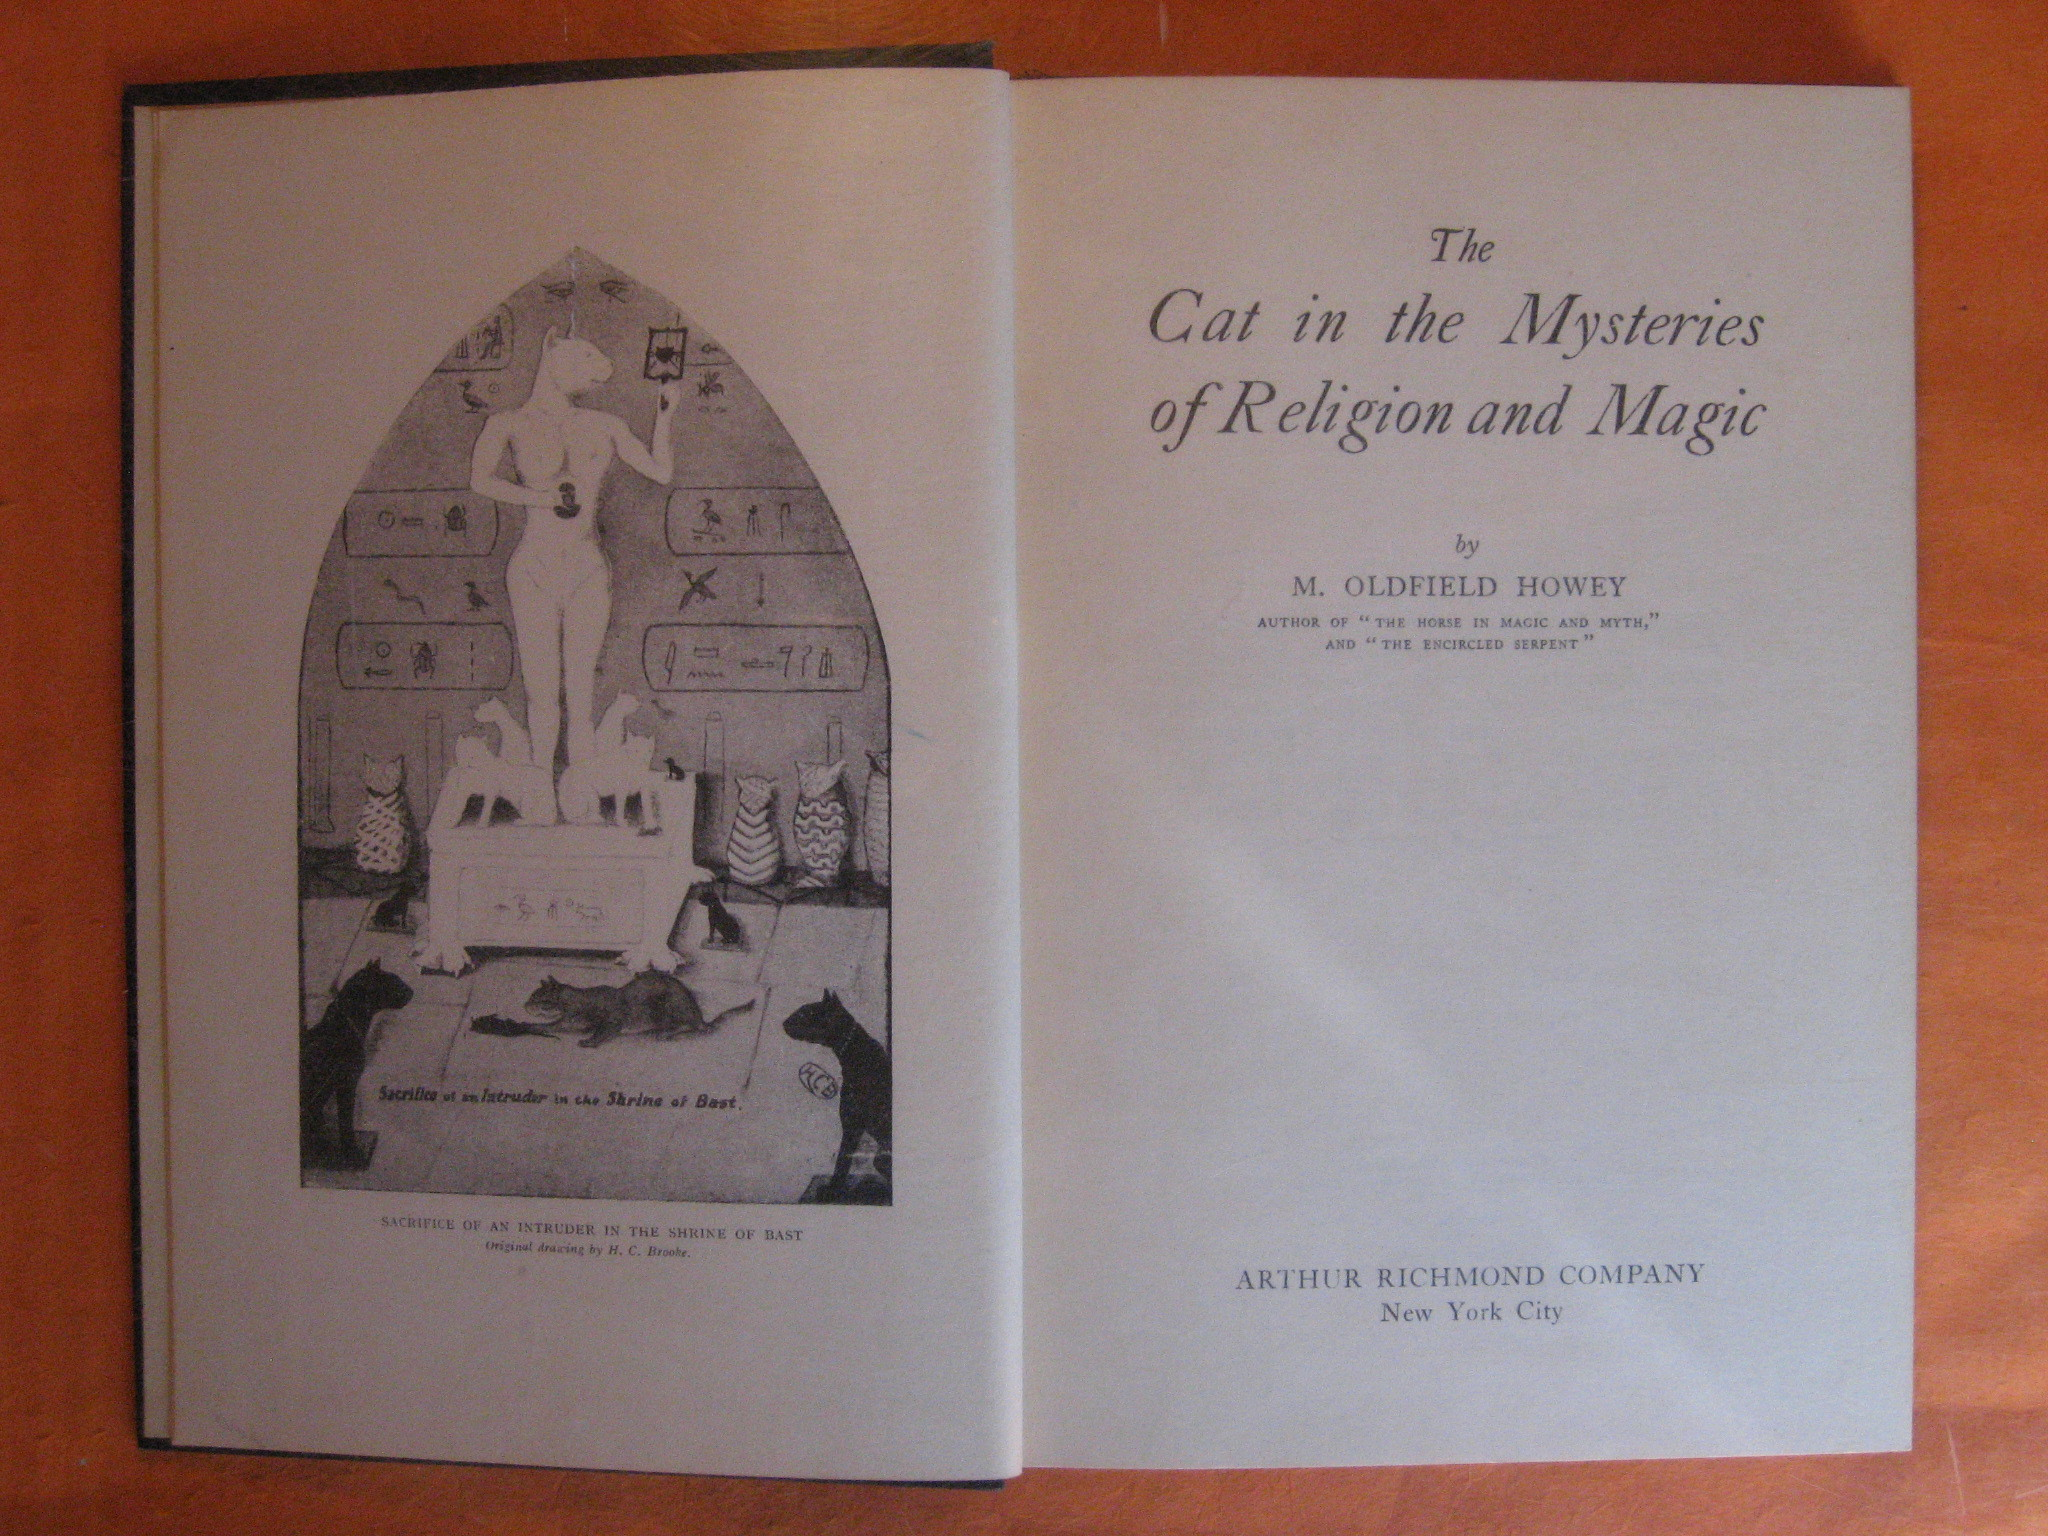 The Cat in the Mysteries of Religion and Magic, Howey, M. Oldfield